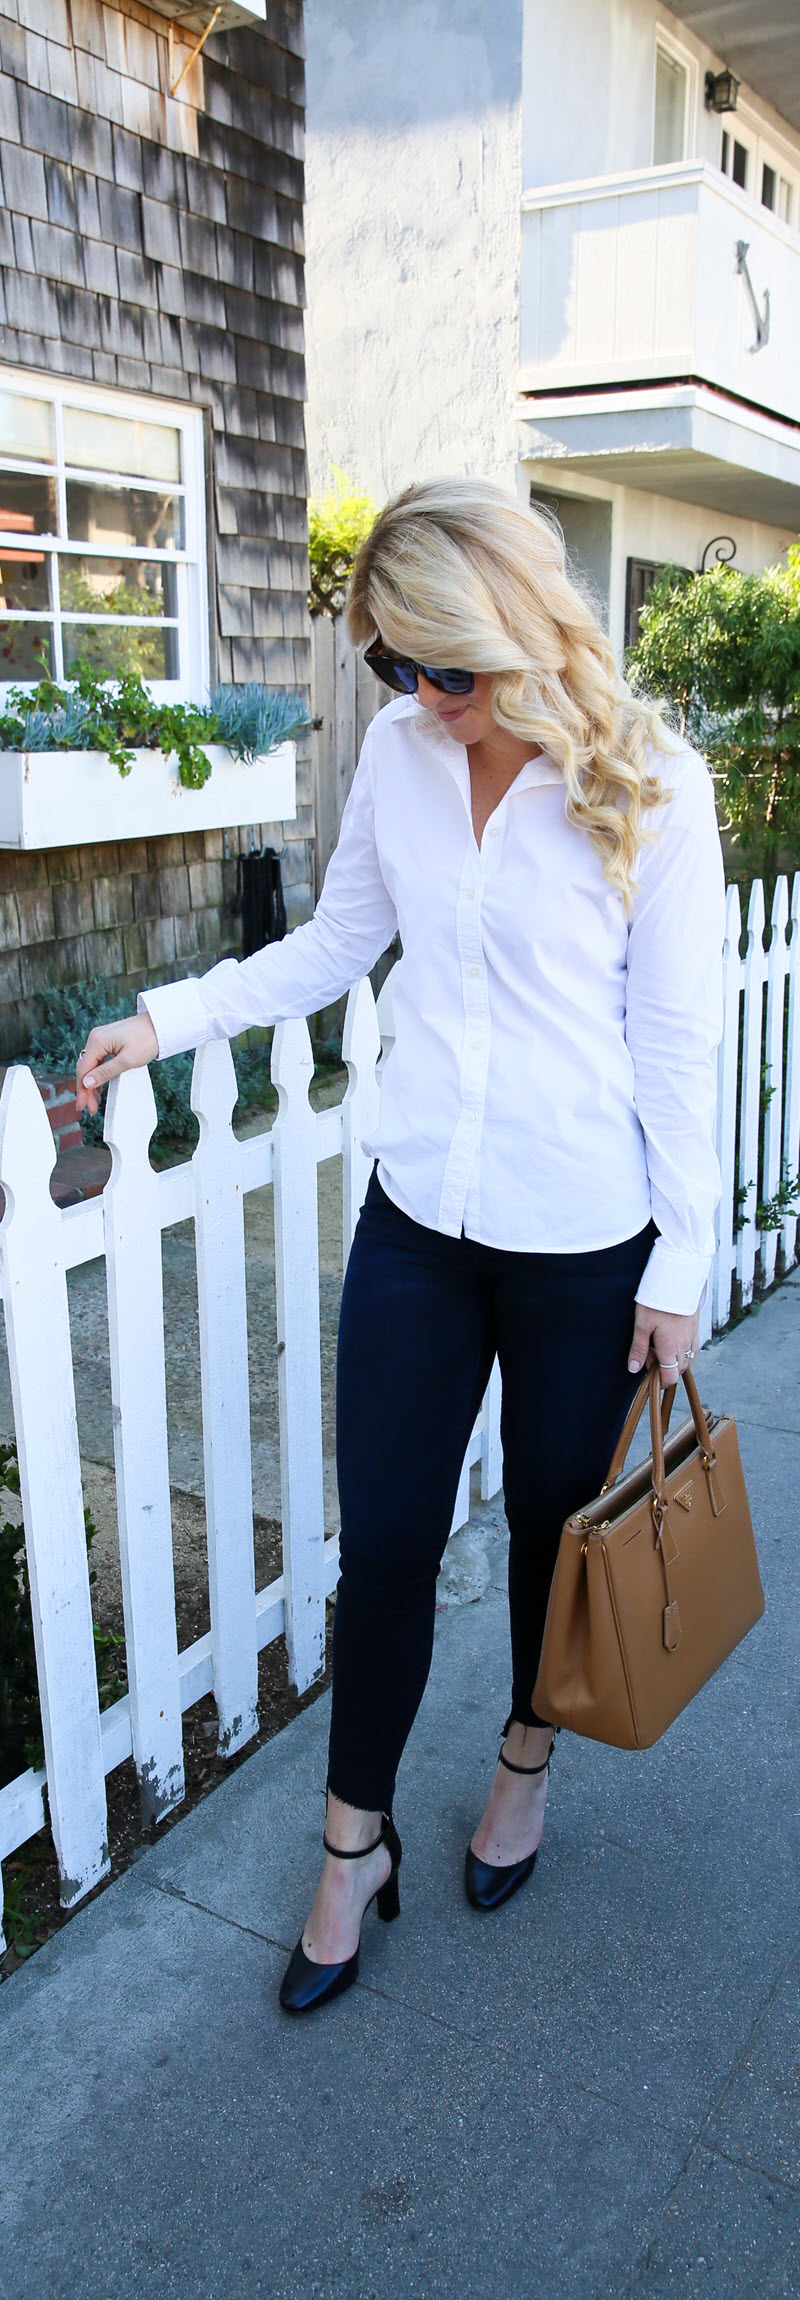 Black and Blue Work Outfit with Jeans - Current/Elliott Uneven Hem #ootd #outfitideas #outfitinspiration #fashionblog #fashionblogger #womenover30 #lablogger #workoutfit #jeans #stylish #womensfashion #womensstyle #styleblog